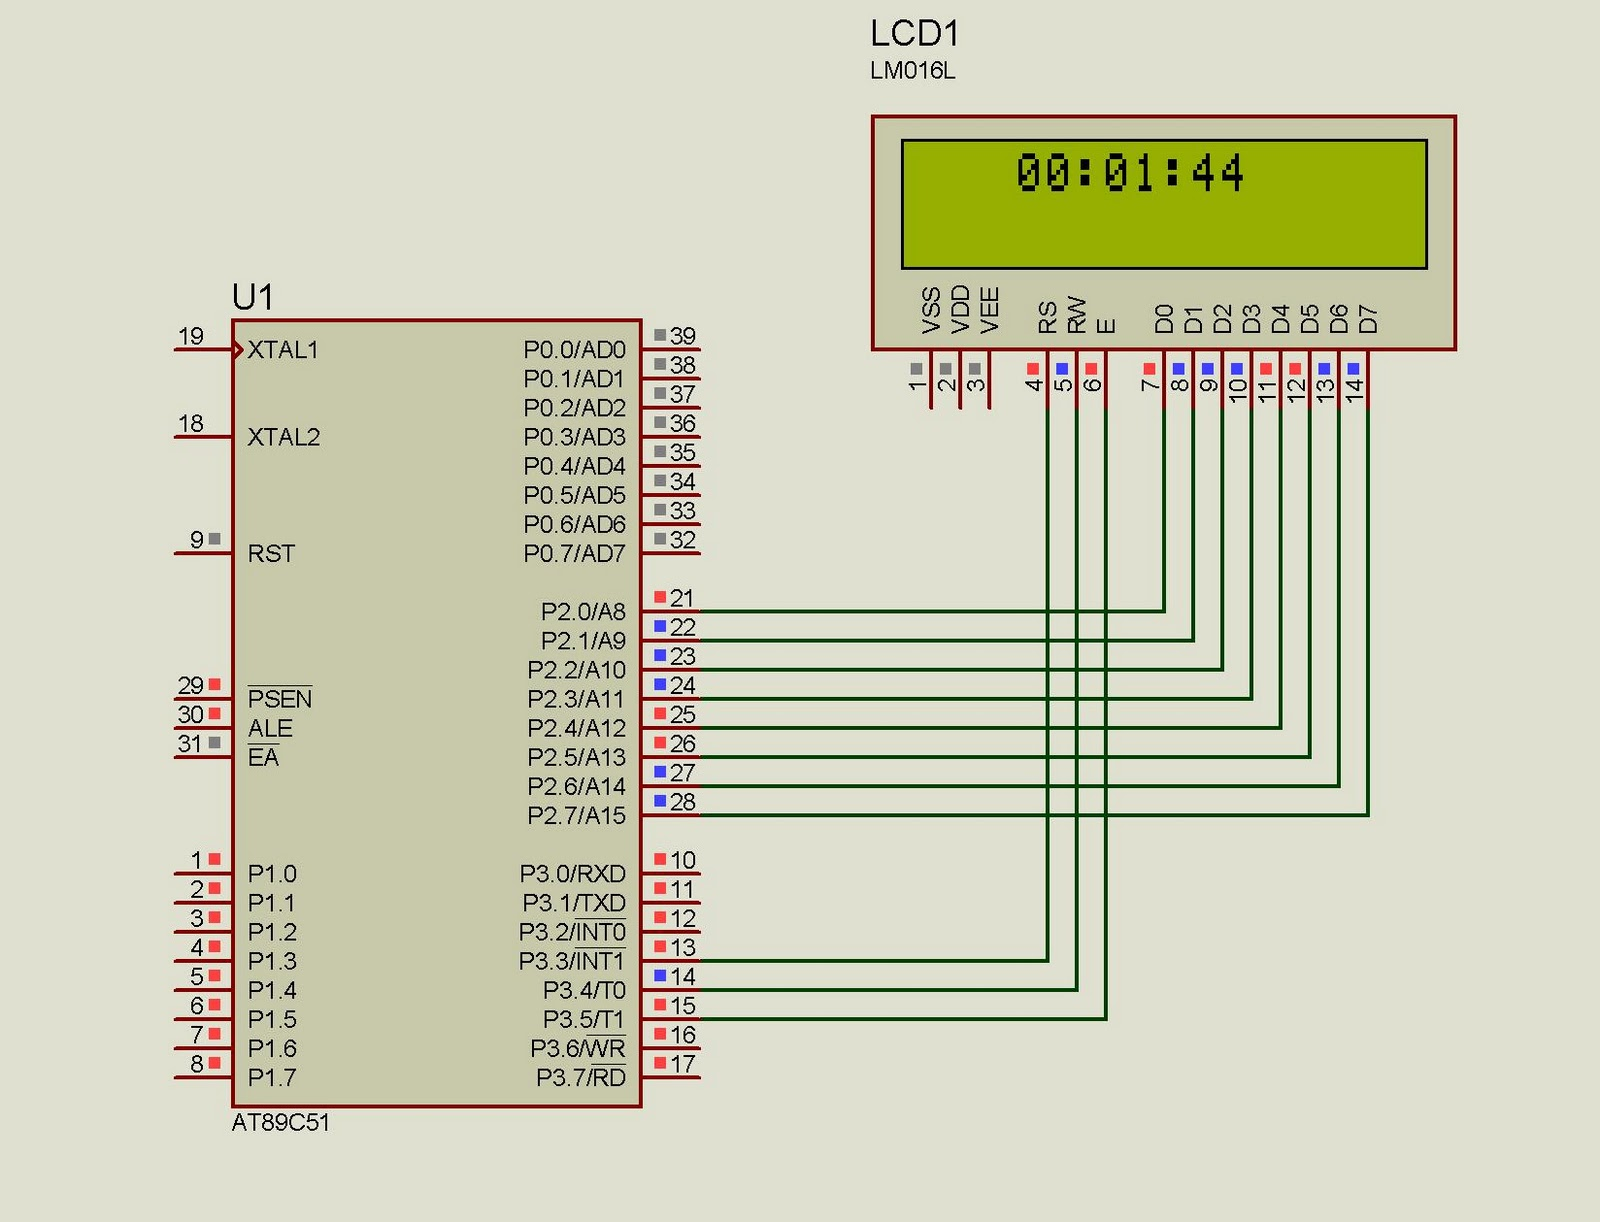 Clock Circuit Page 3 Meter Counter Circuits 8085 Projects Blog Archive Analog Oscilloscope Lcd Using 8051 89s51 Microcontroller